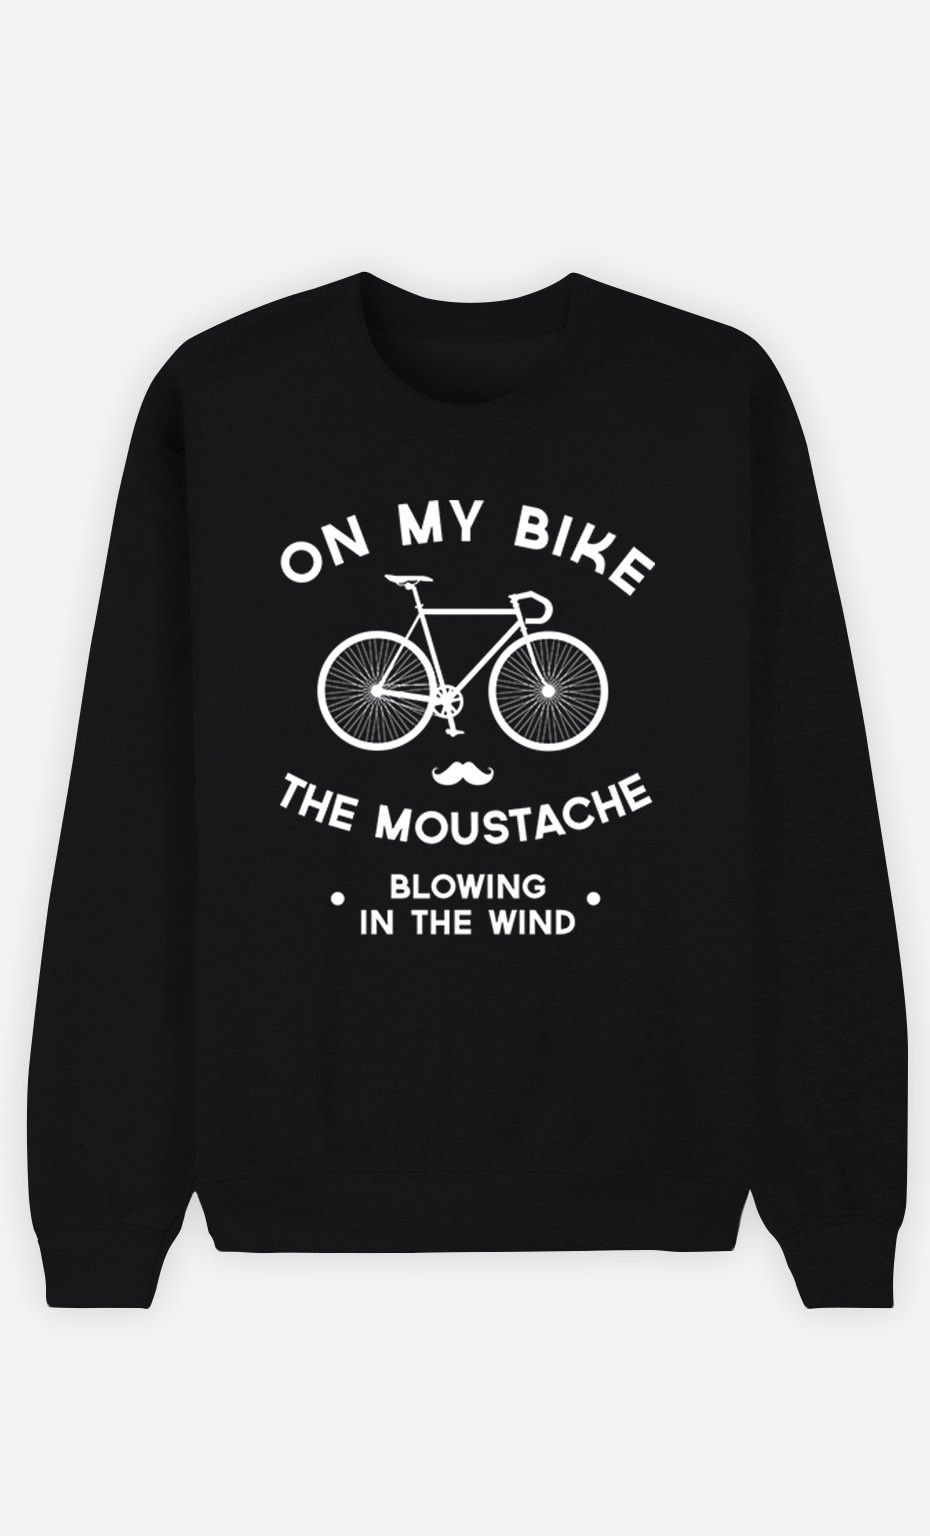 Black Sweatshirt The Moustache Blowing